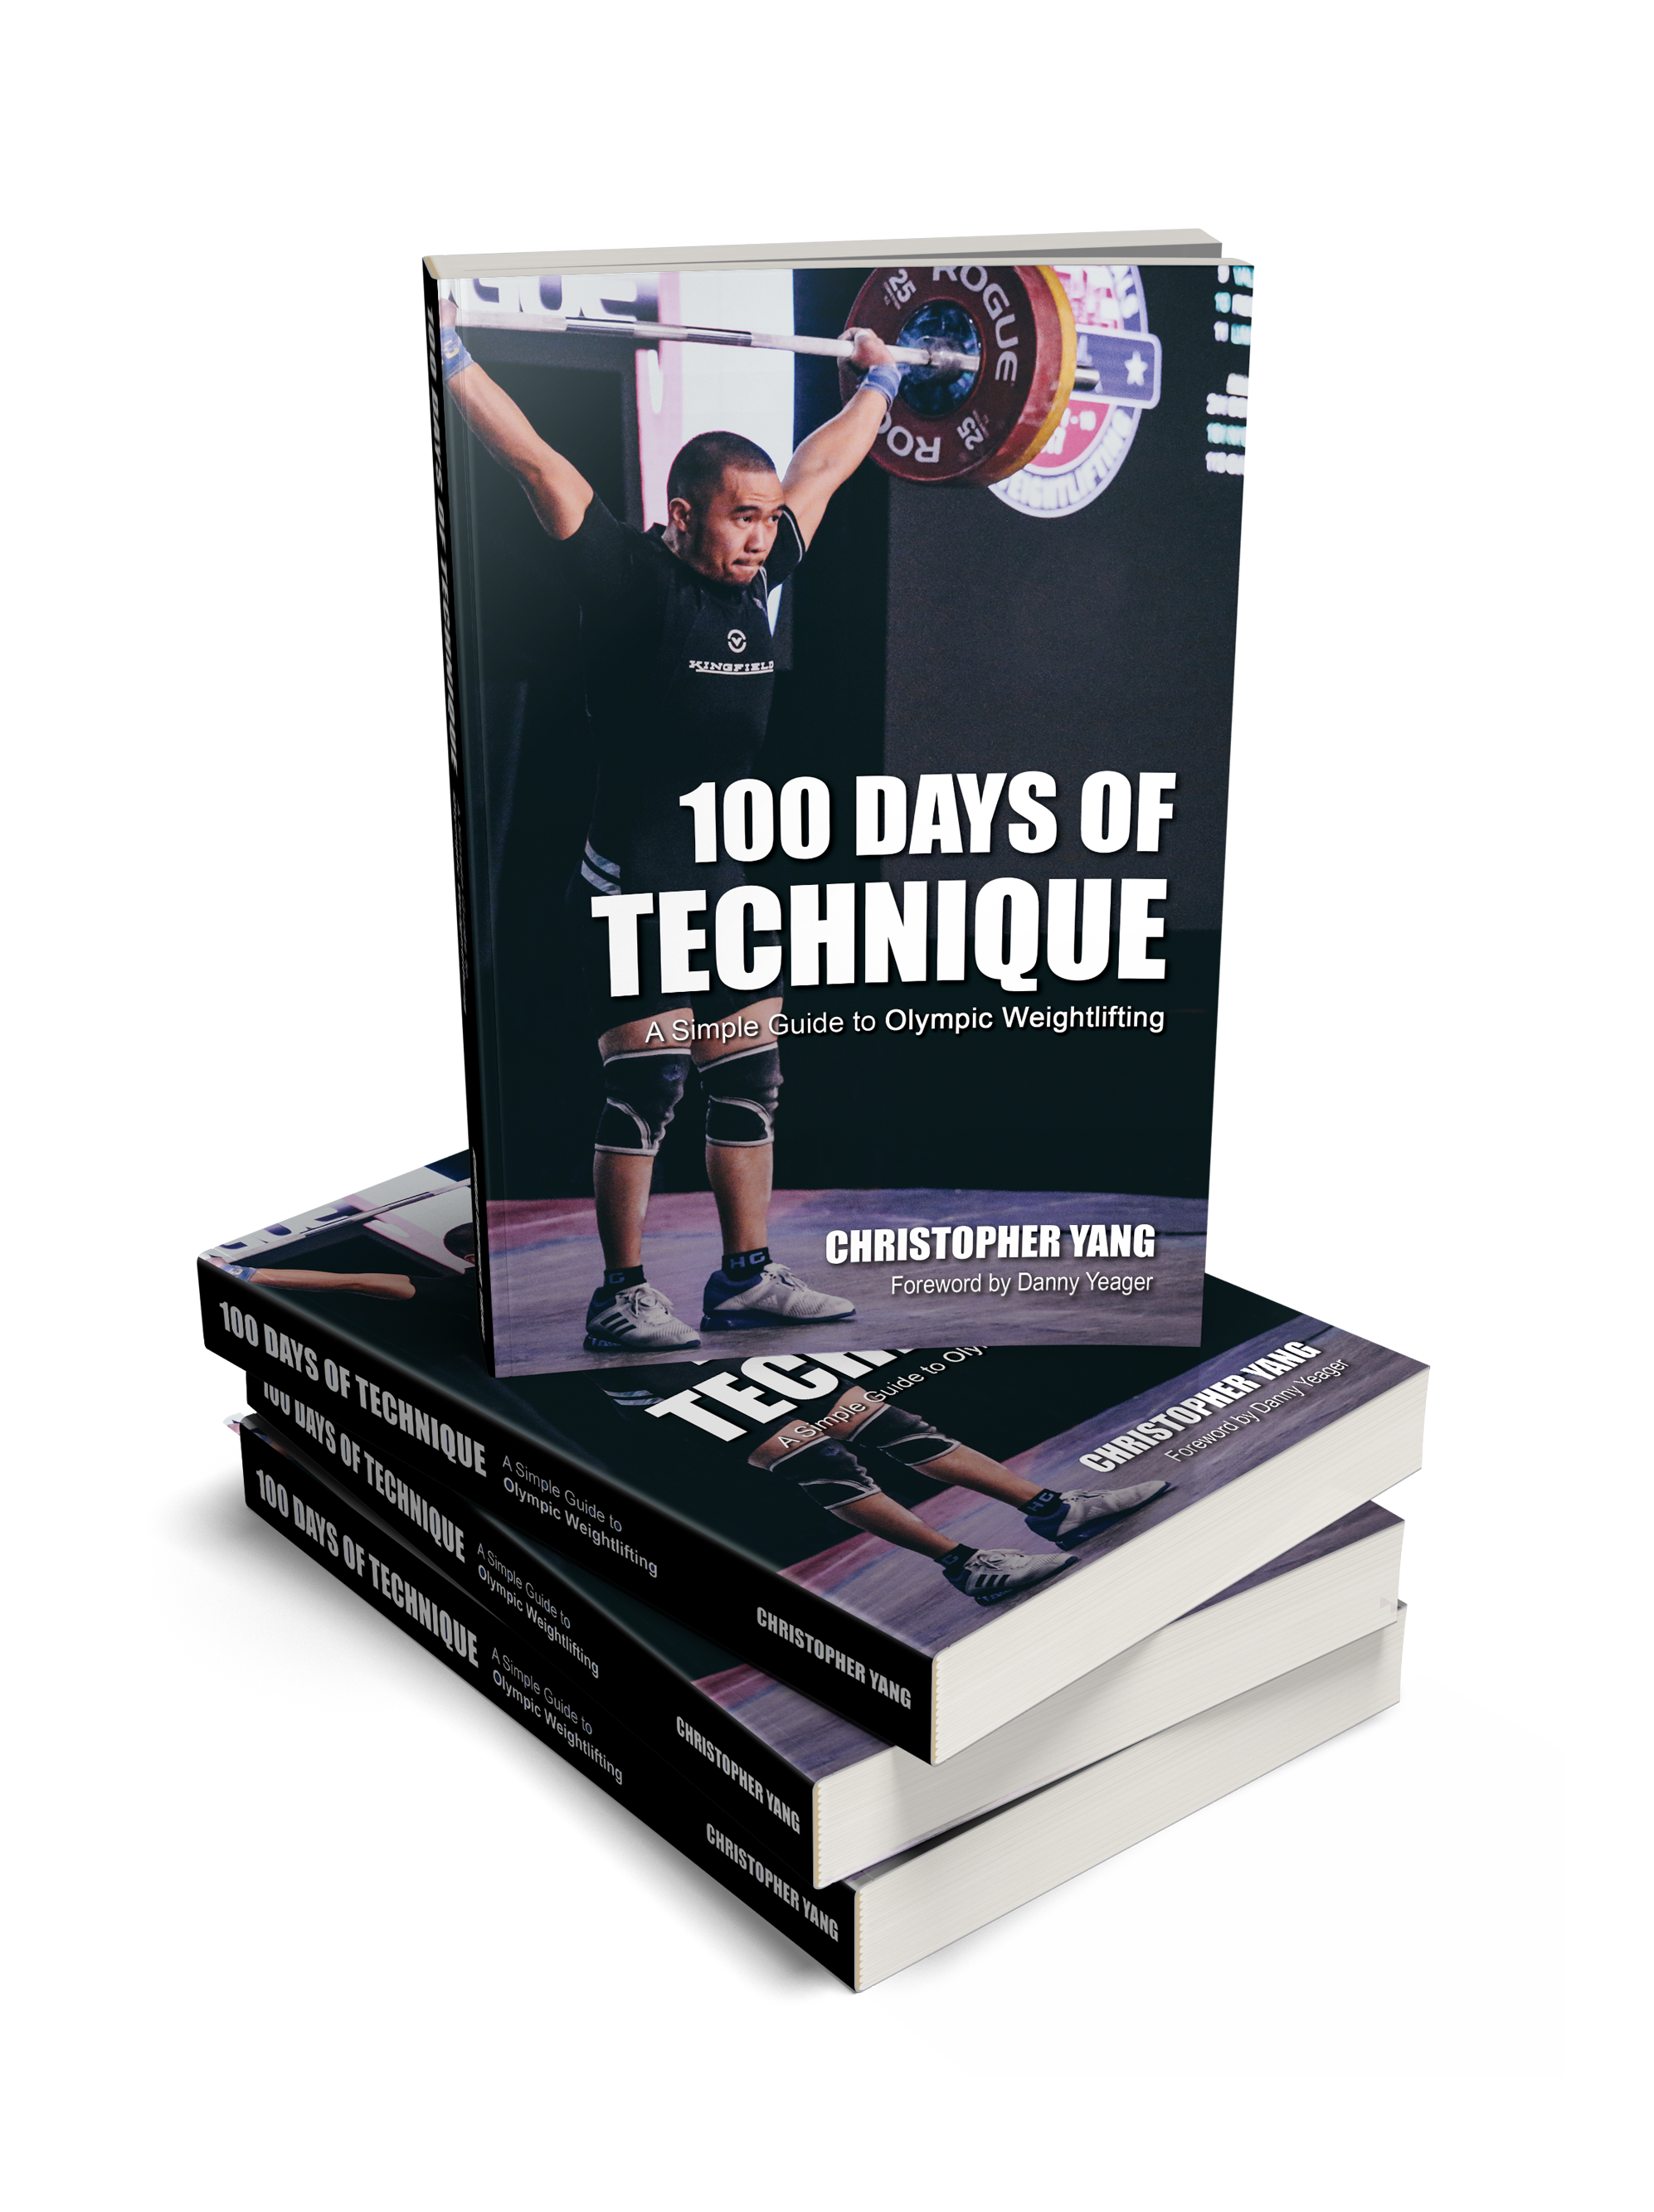 100 Days of Technique Book Display